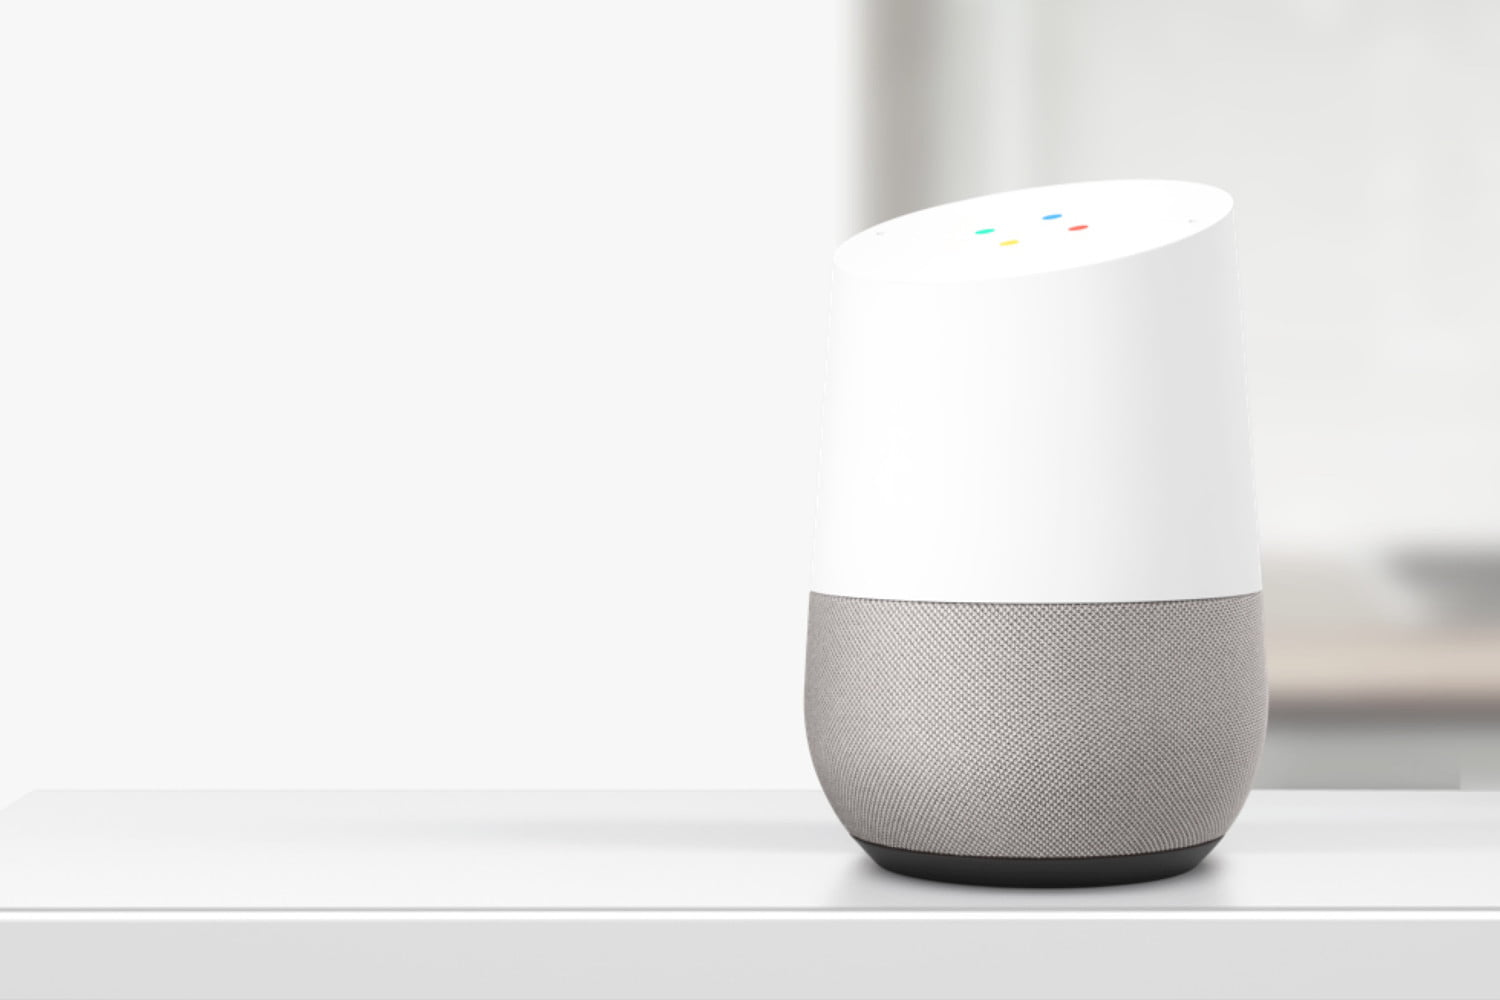 How to Improve Sound and Voice Recognition on A Google Home